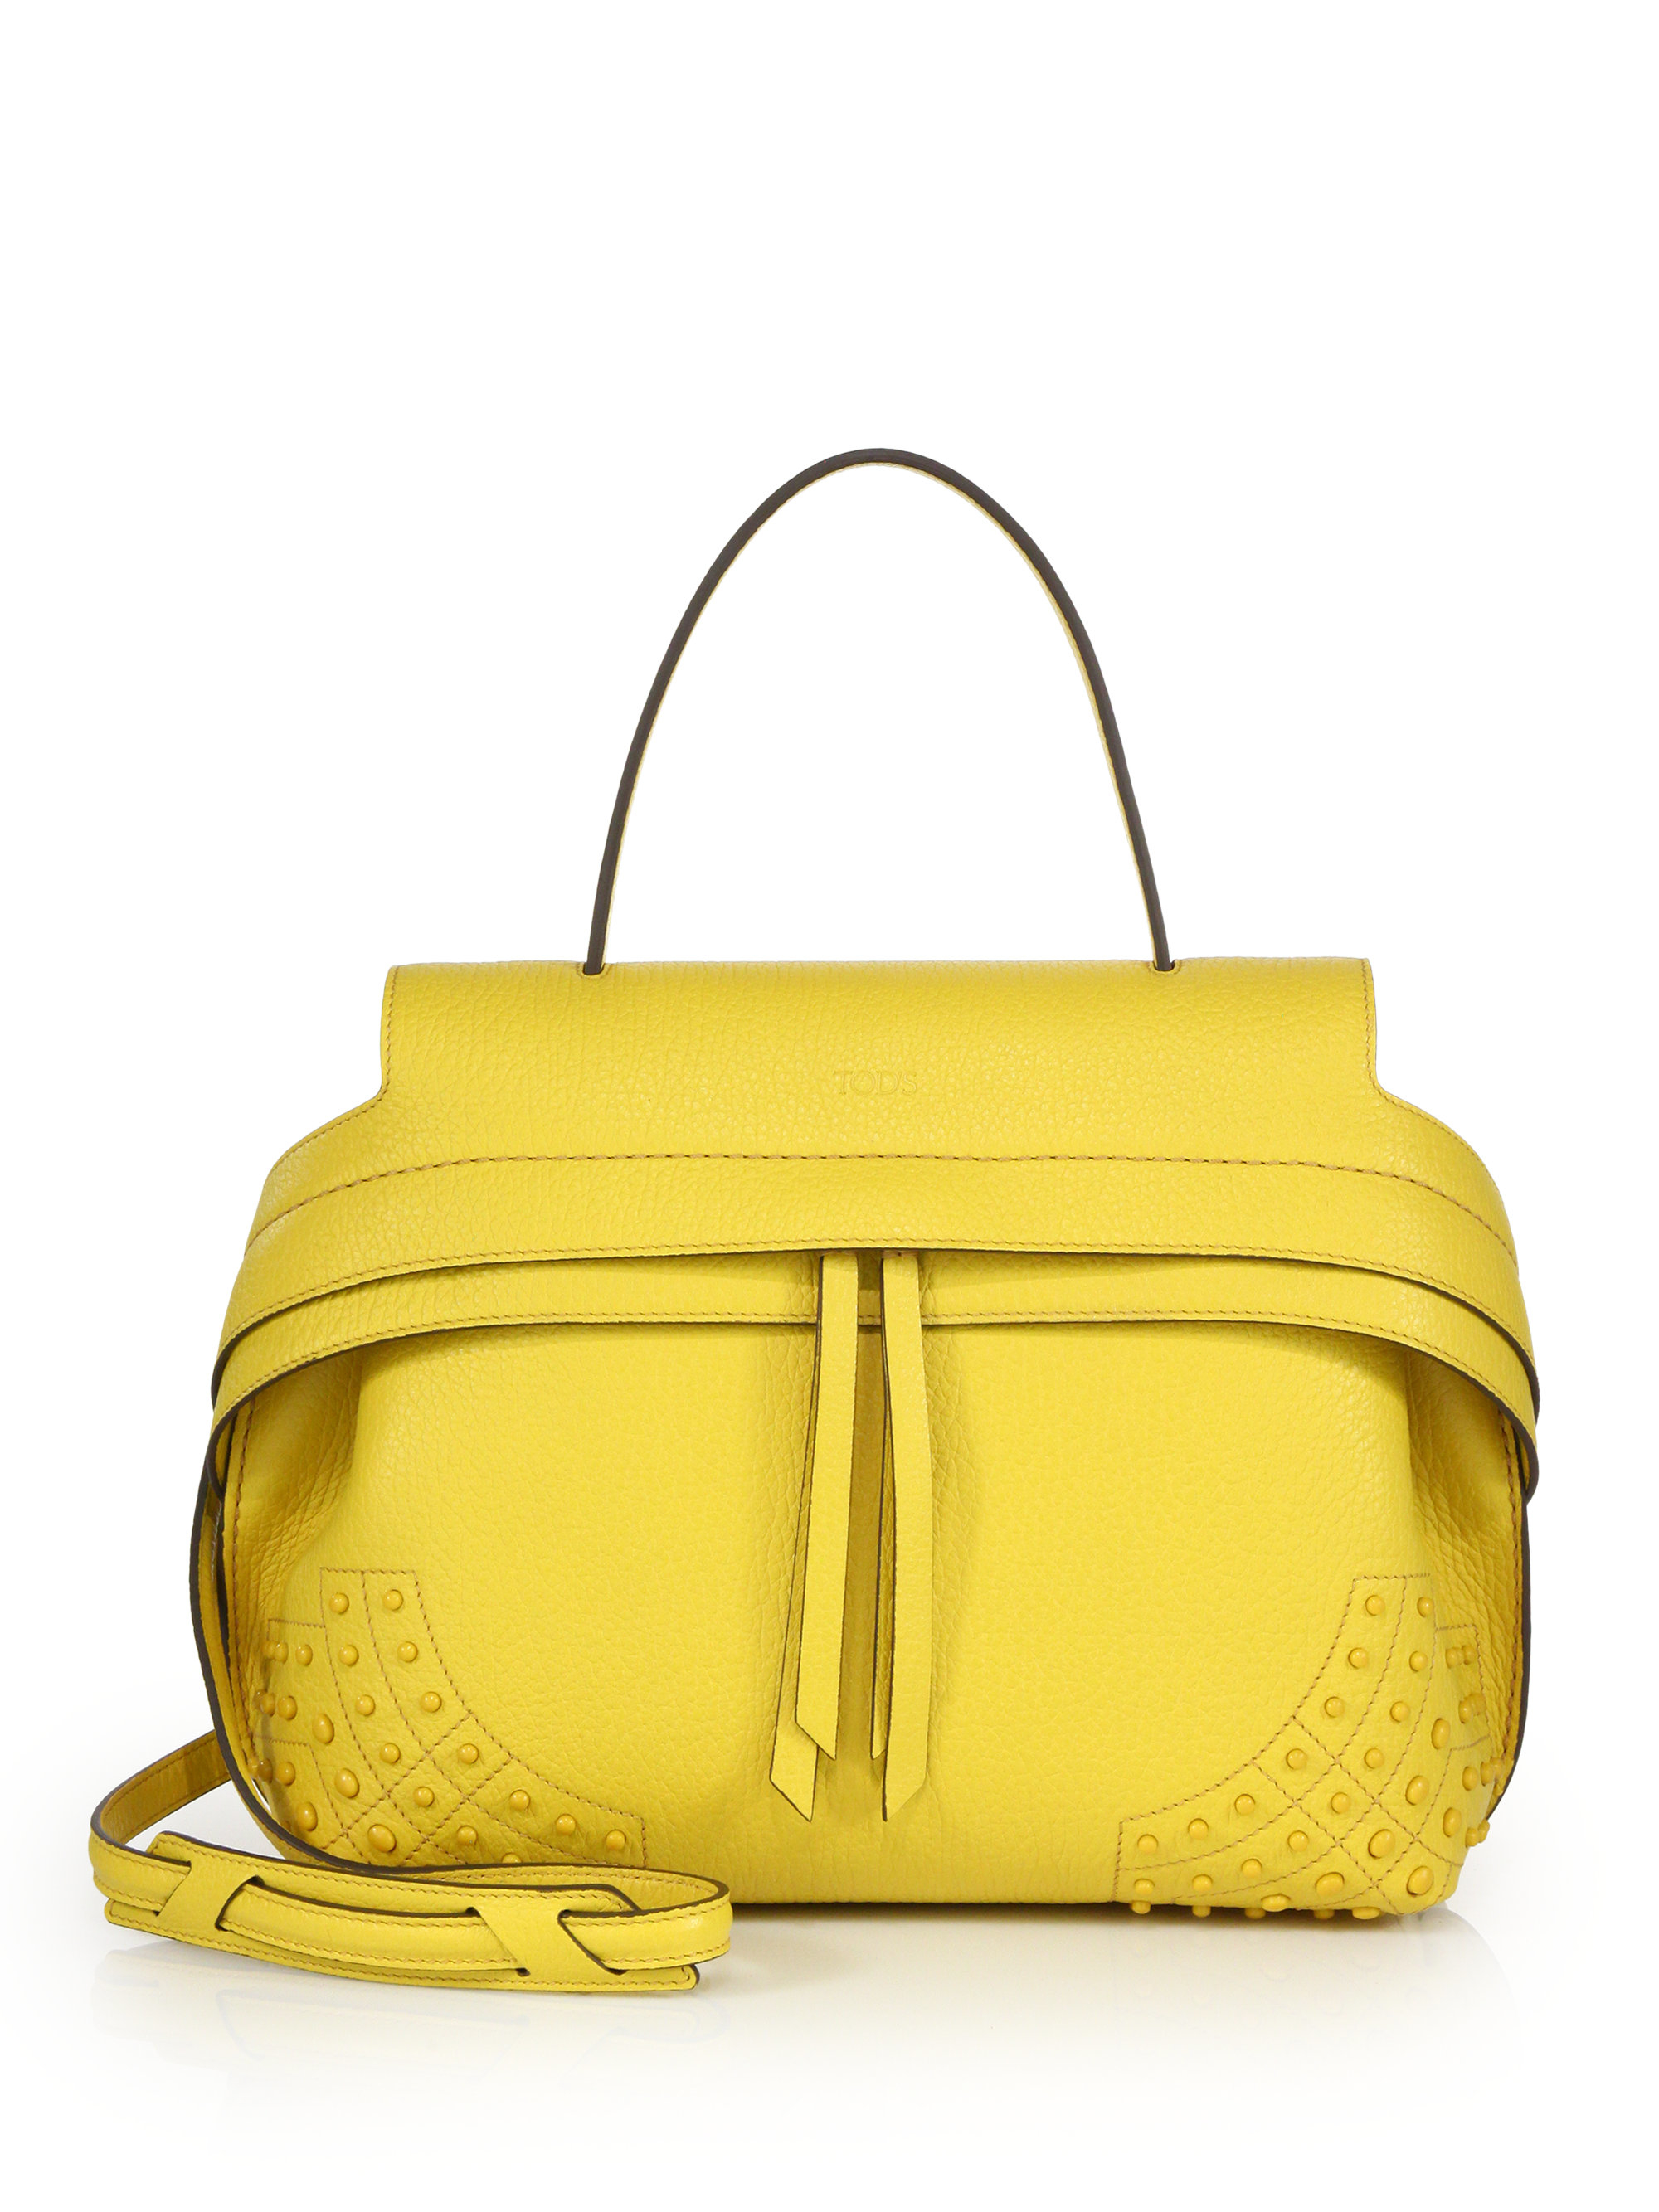 Tod's Wave Small Gommini Leather Satchel in Yellow